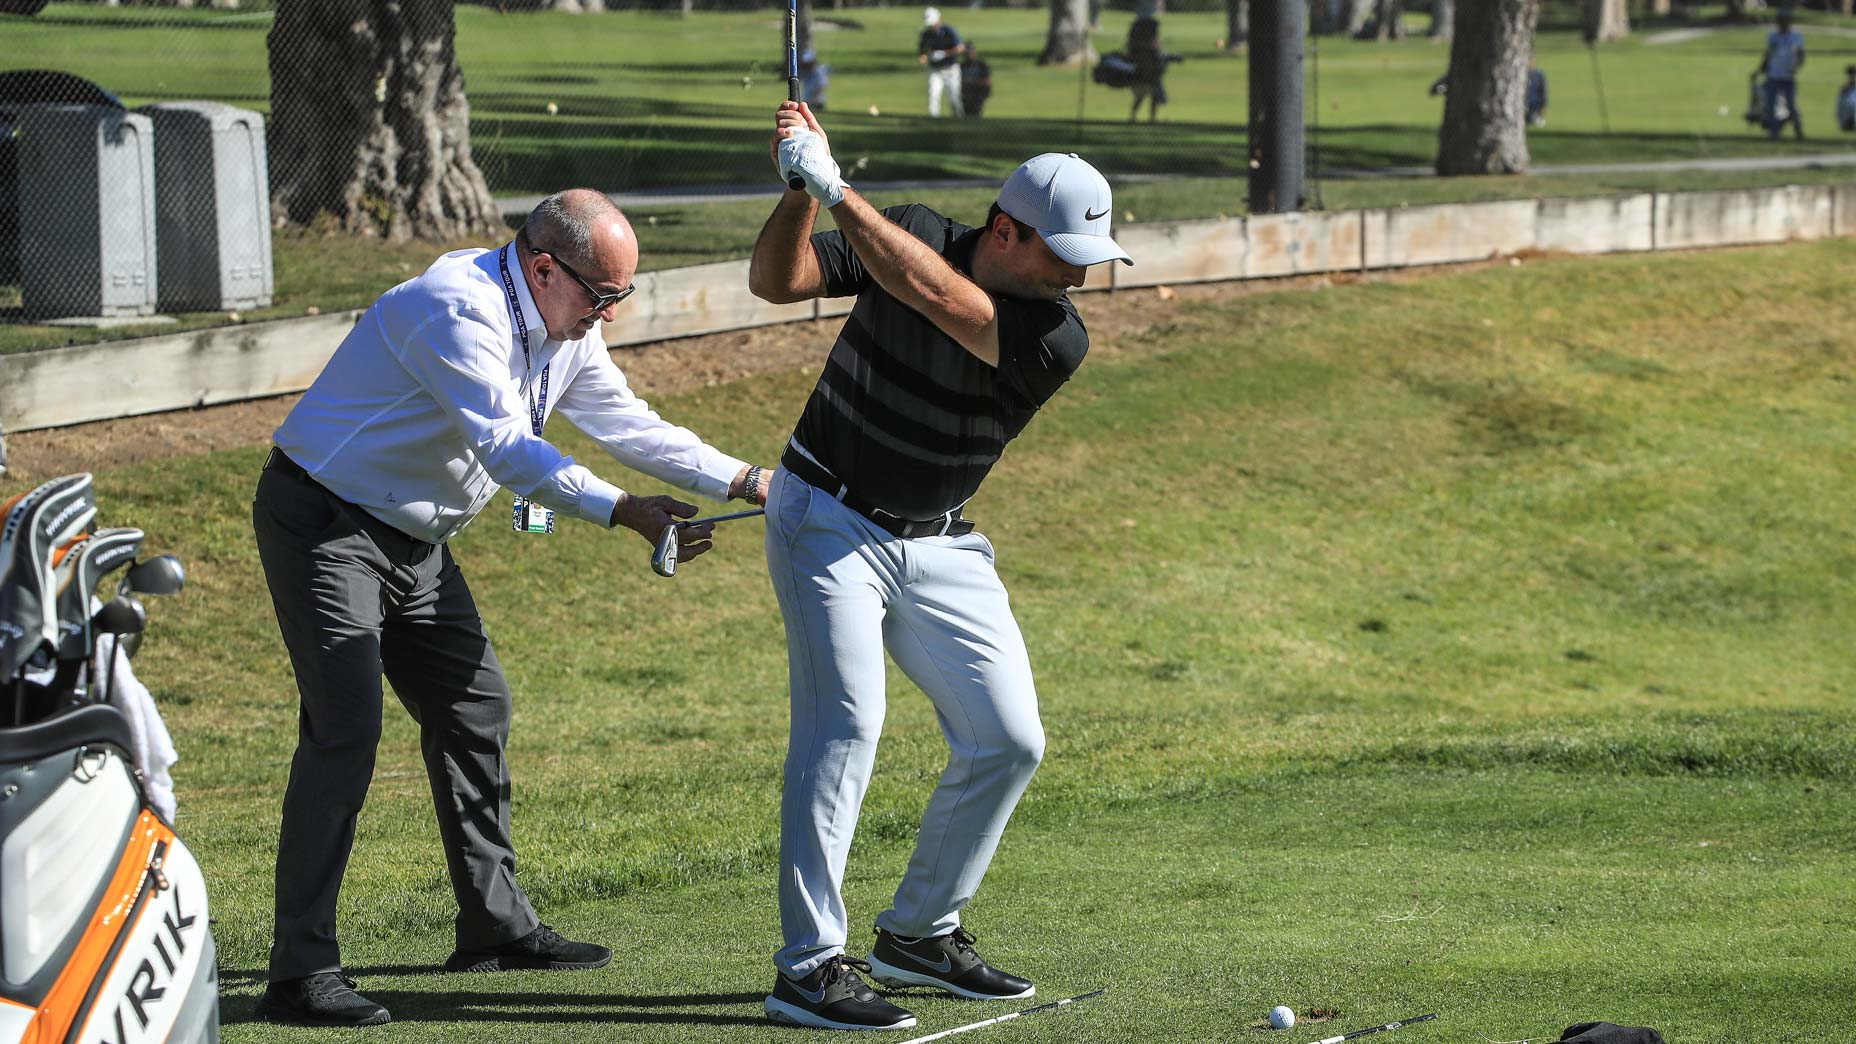 Learn this list of golf terms so you can become your own swing doctor